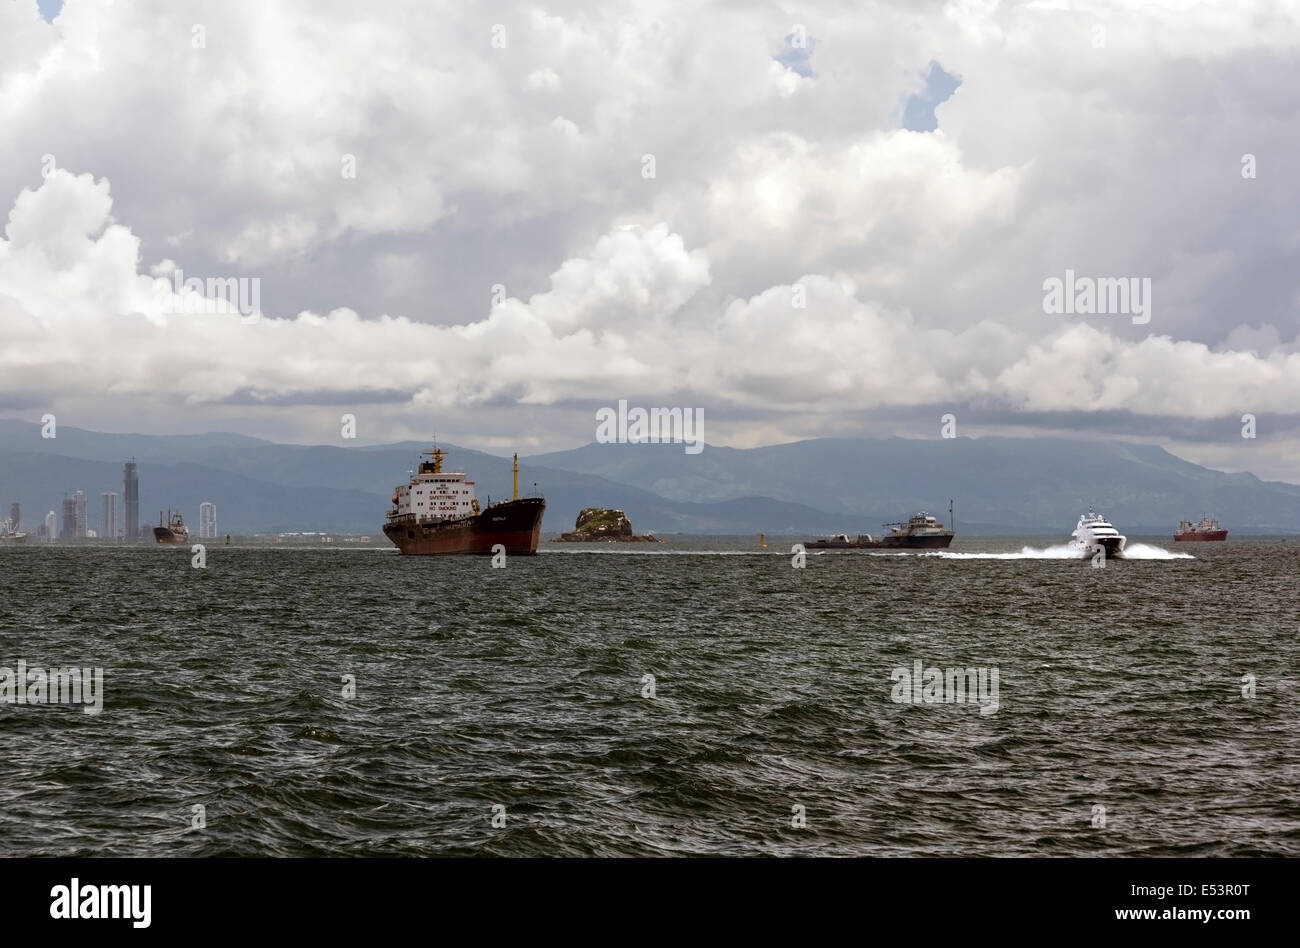 Yacht going to Taboga island and cargo ships waiting to cross Panama Canal in the Gulf of Panama with the Panama - Stock Image